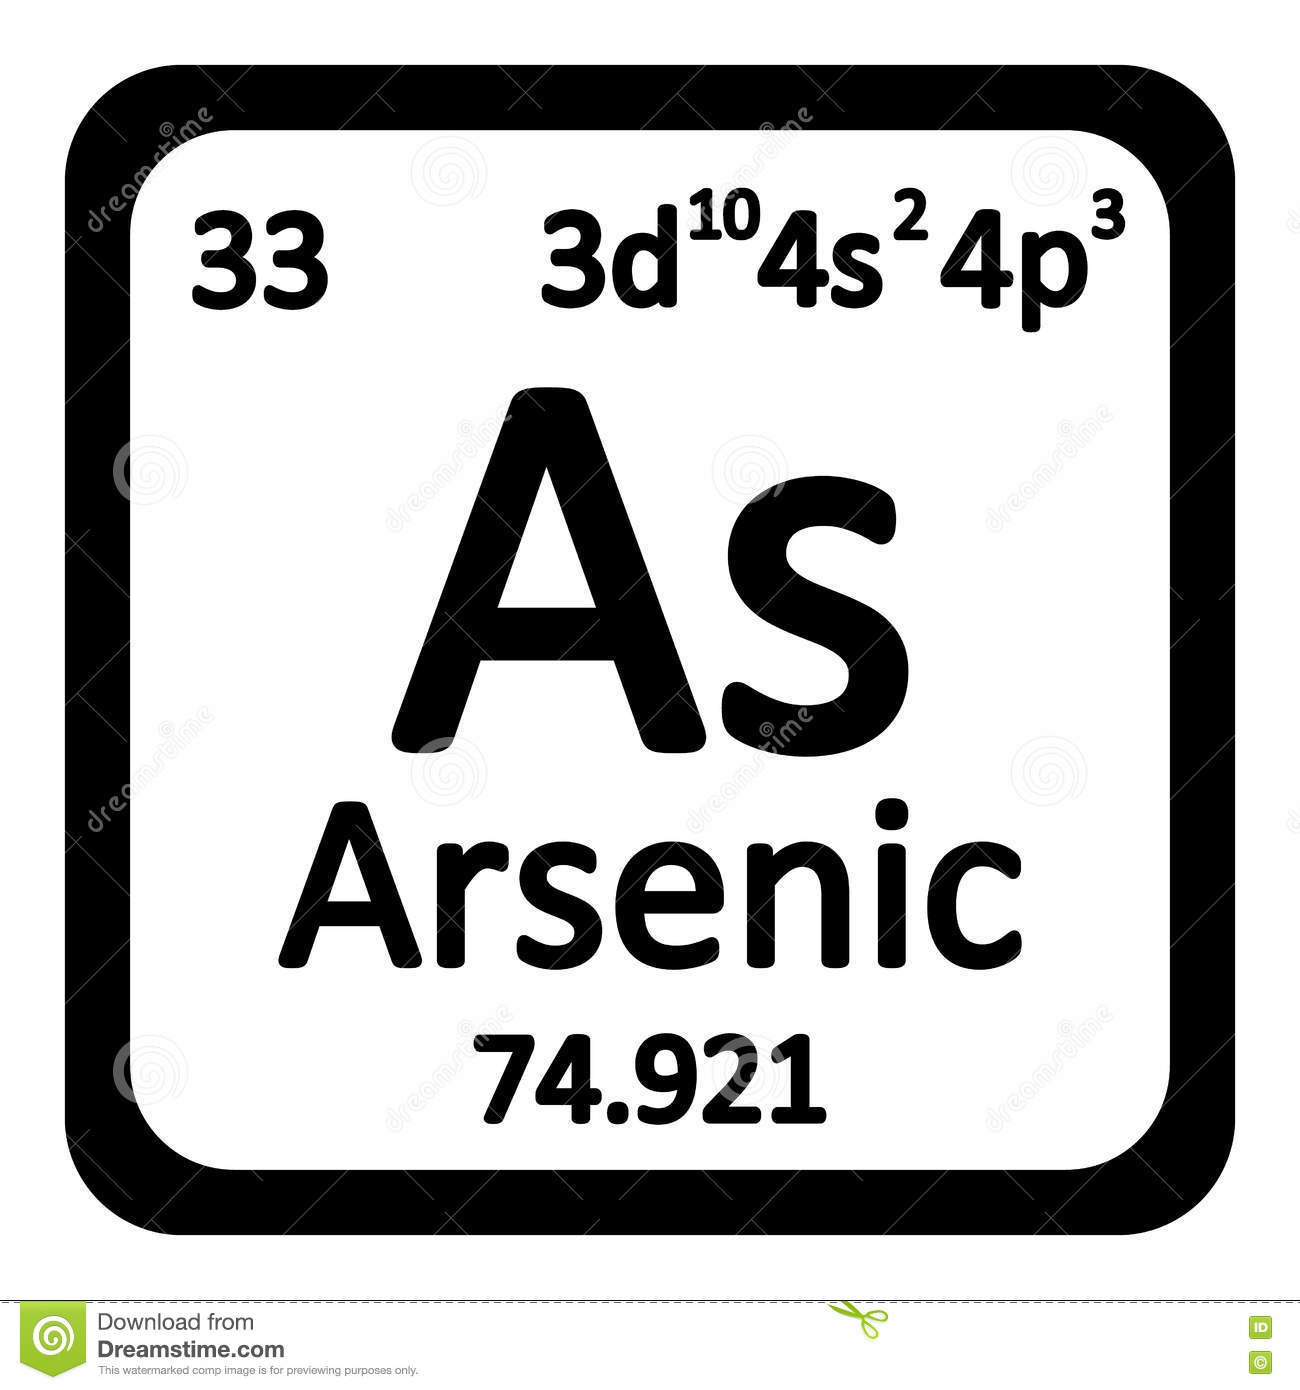 Periodic table element arsenic icon stock illustration periodic table element arsenic icon biocorpaavc Image collections